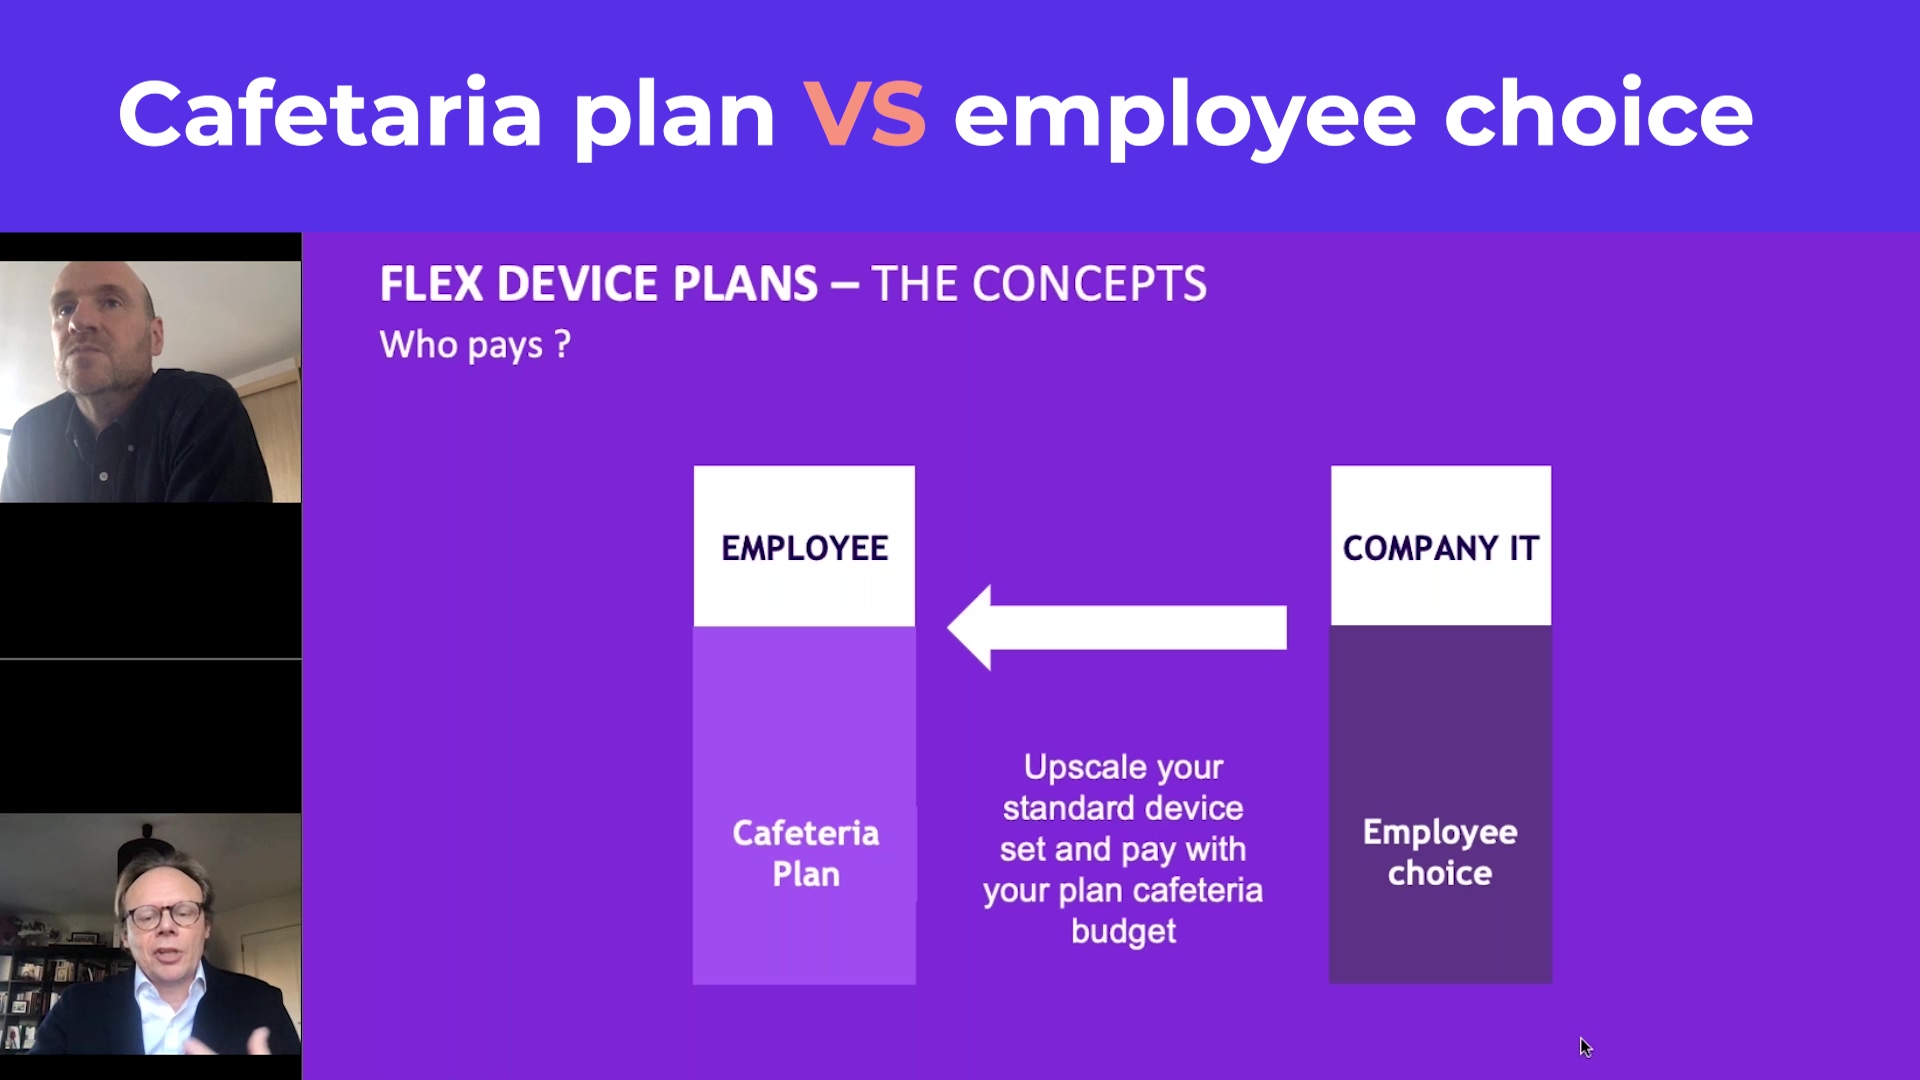 webinar plan cafet - difference plan cafet and employee choice